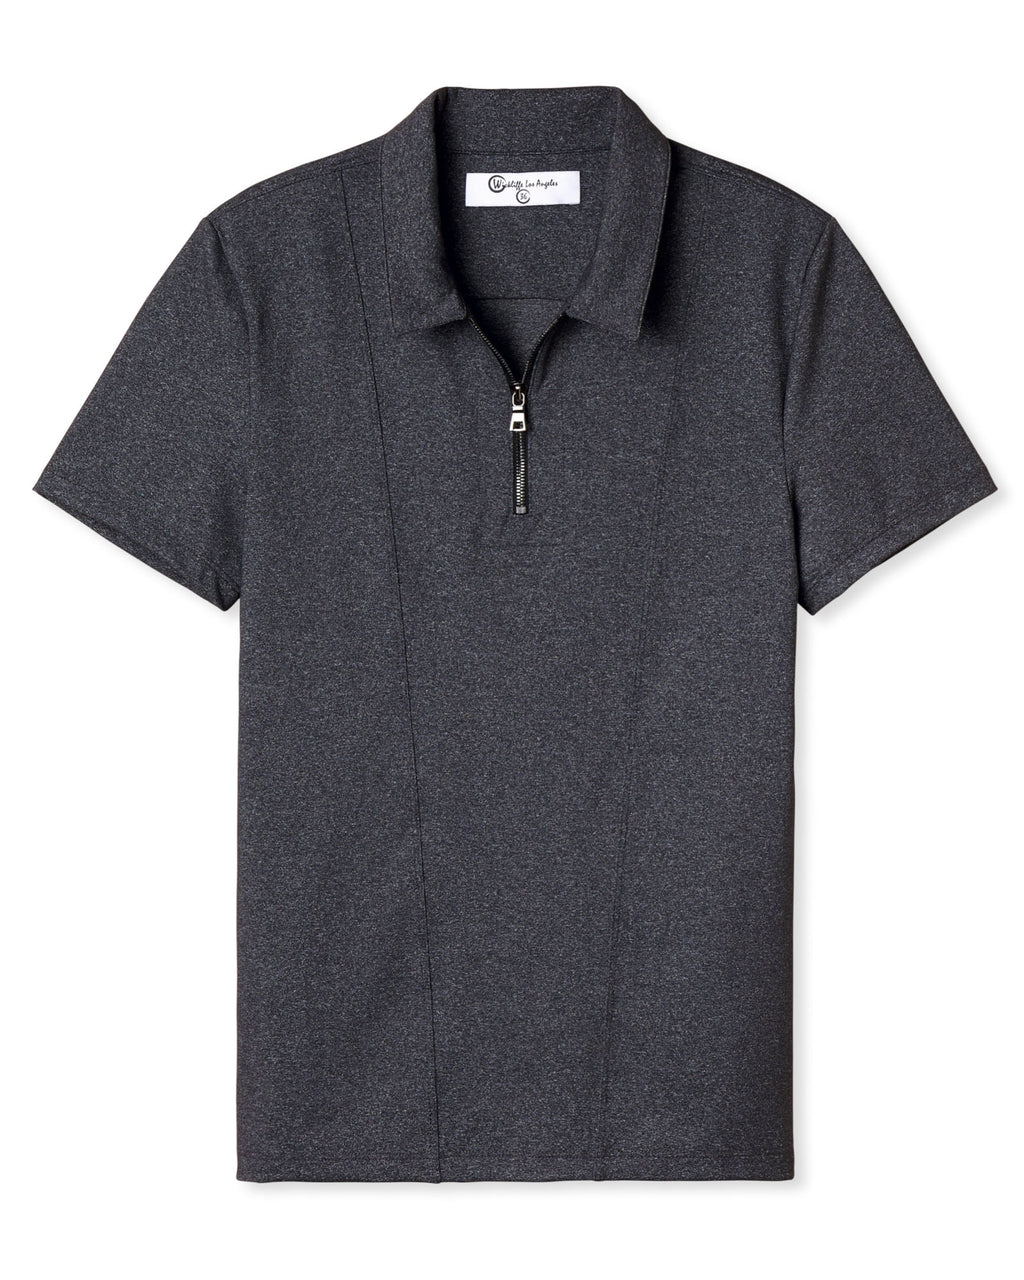 KENNETH ZIPPER POLO DARK HEATHER GREY